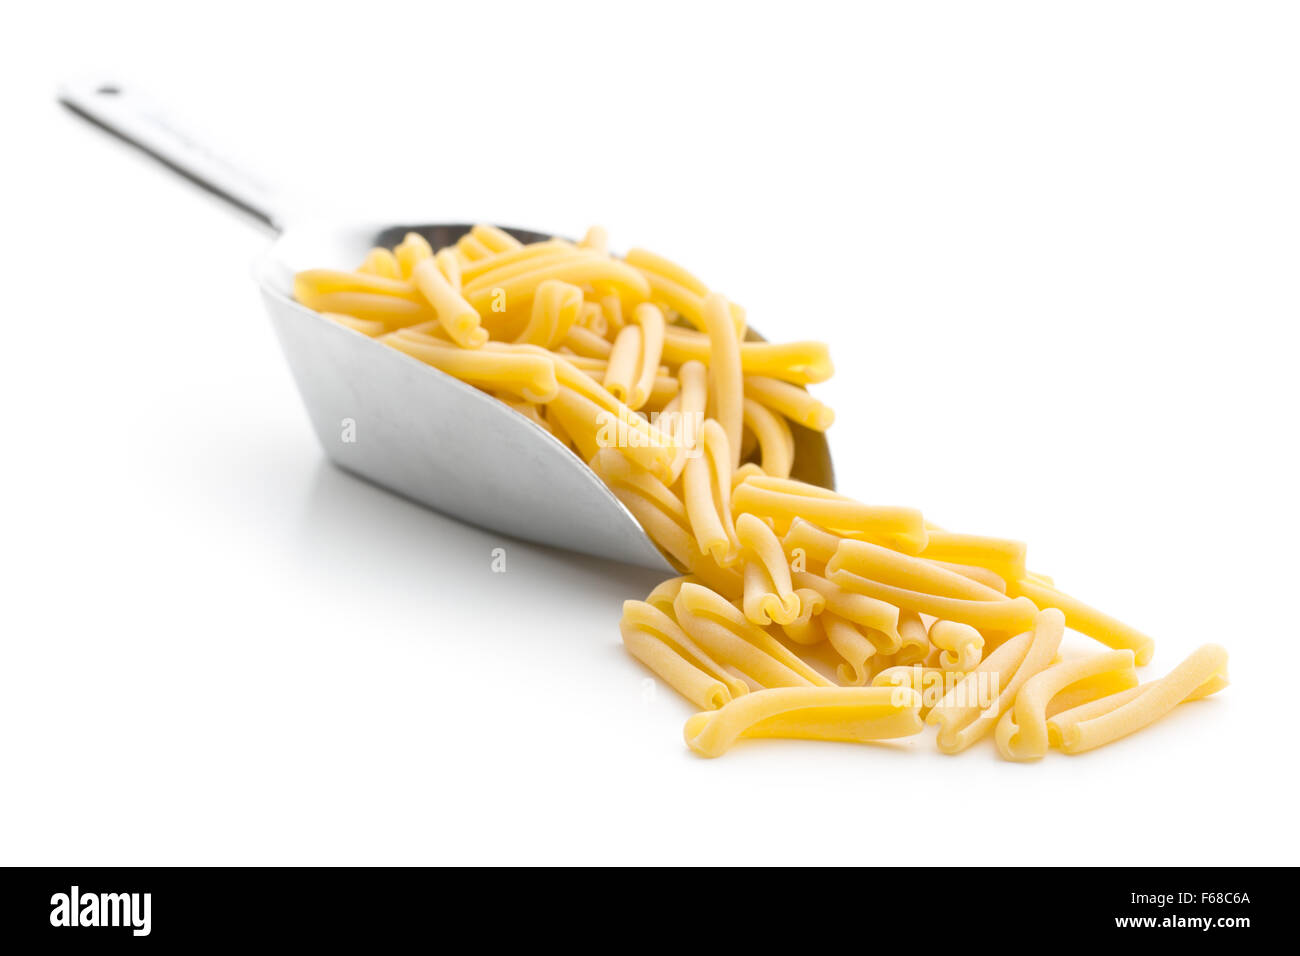 uncooked pasta caserecce in metal scoop on white background - Stock Image